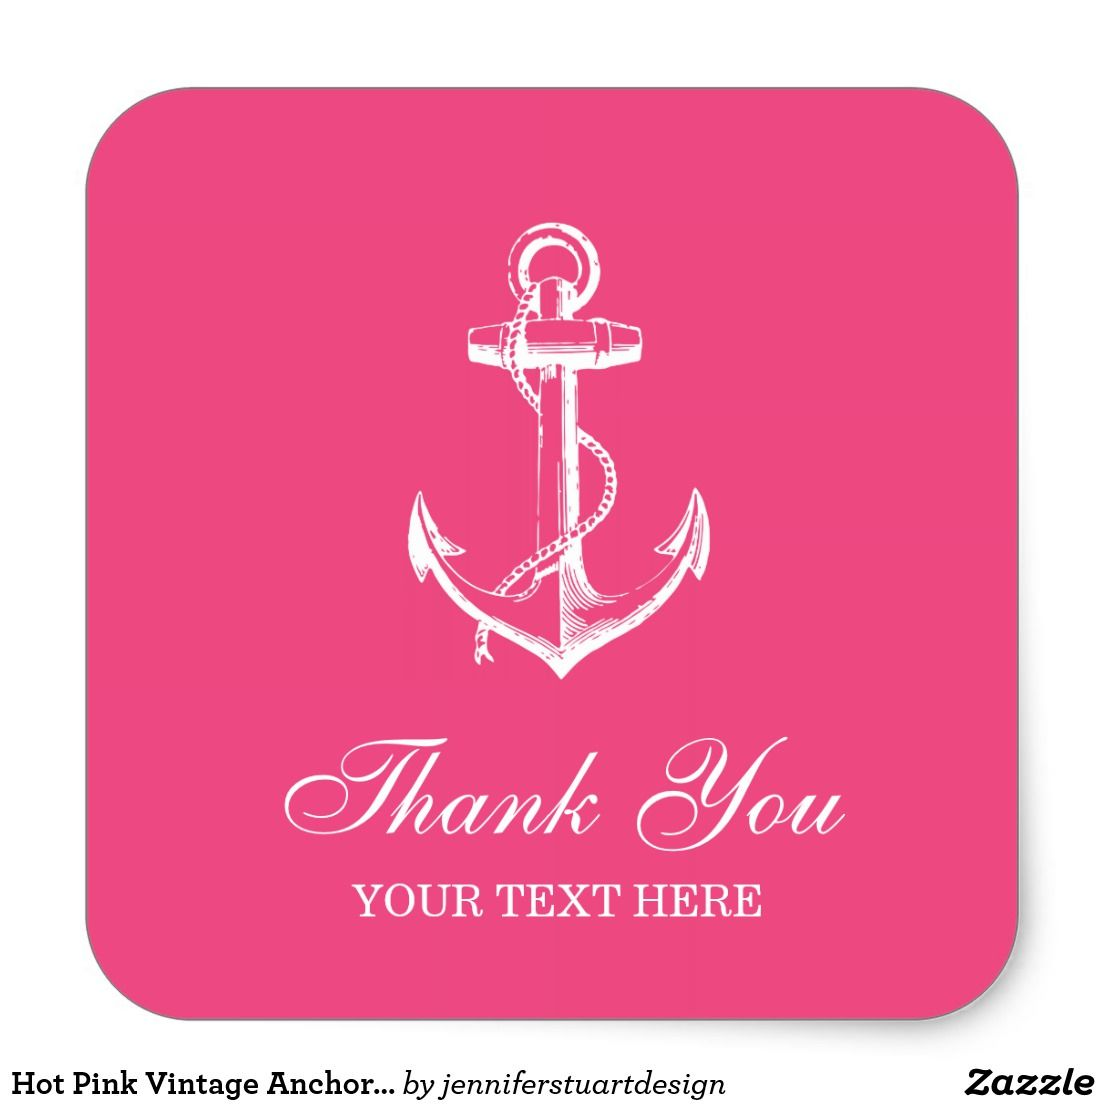 Hot Pink Vintage Anchor Thank You Favor Square Sticker | Wedding ...